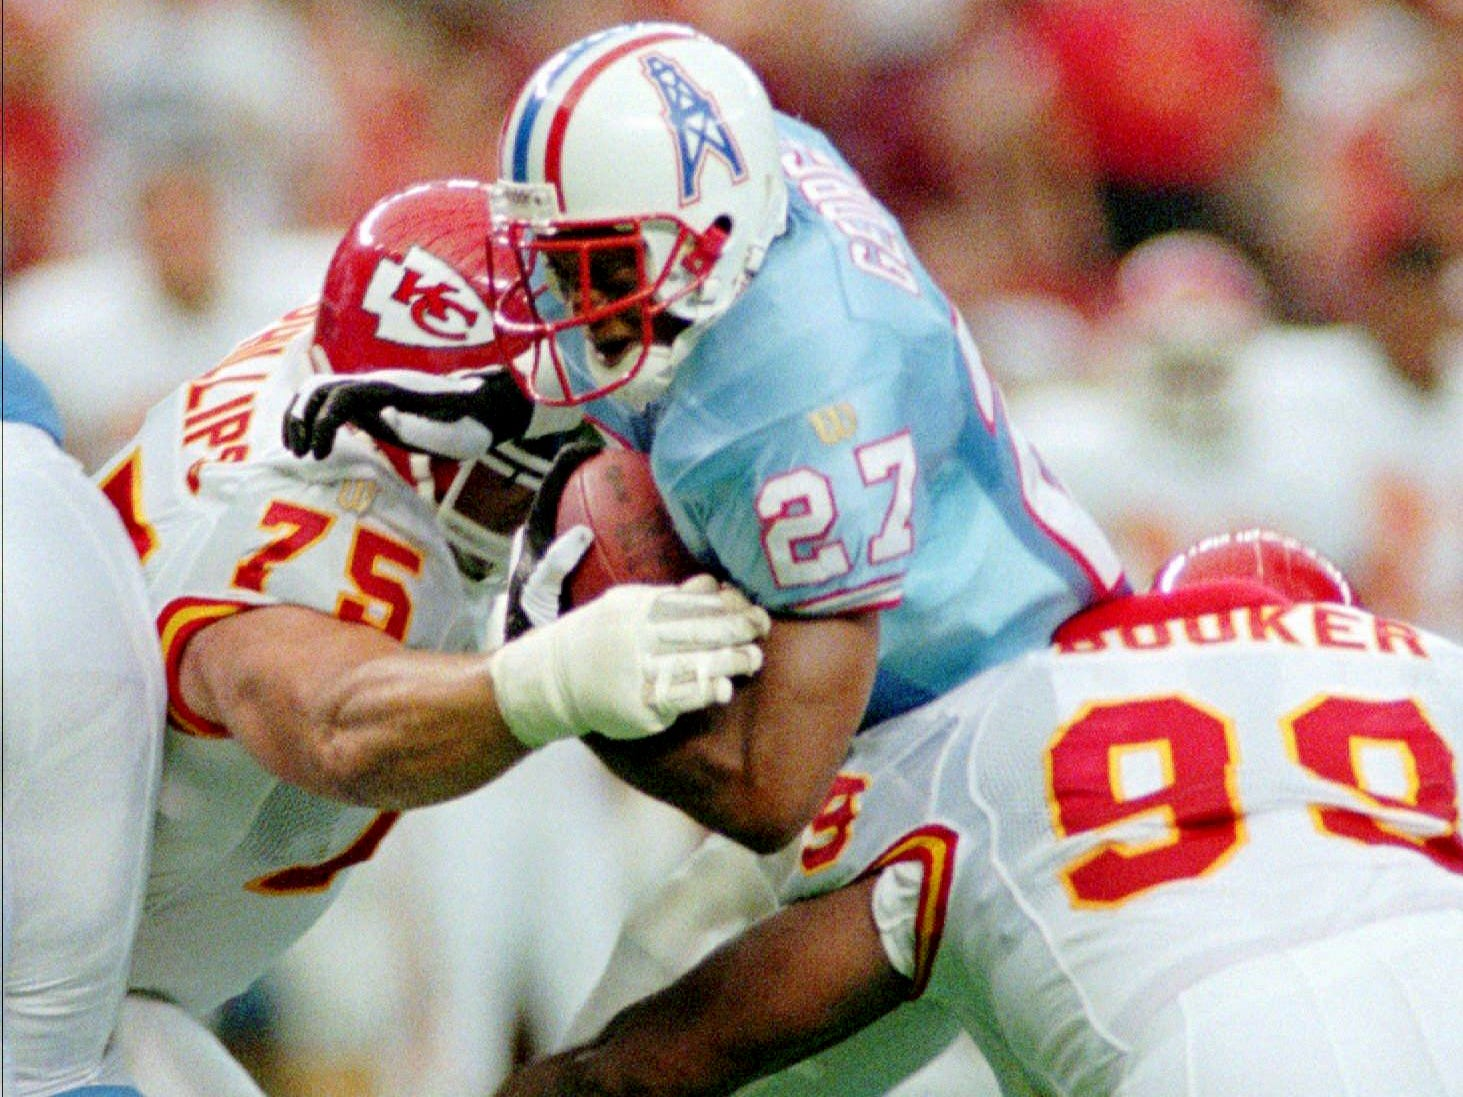 Kansas City Chiefs' Joe Phillips (75) and Vaughn Booker (99) stop Houston Oilers running back Eddie George (27) during the second quarter Sept. 1, 1996 in Houston. The Chiefs beat the Oilers 20-19.